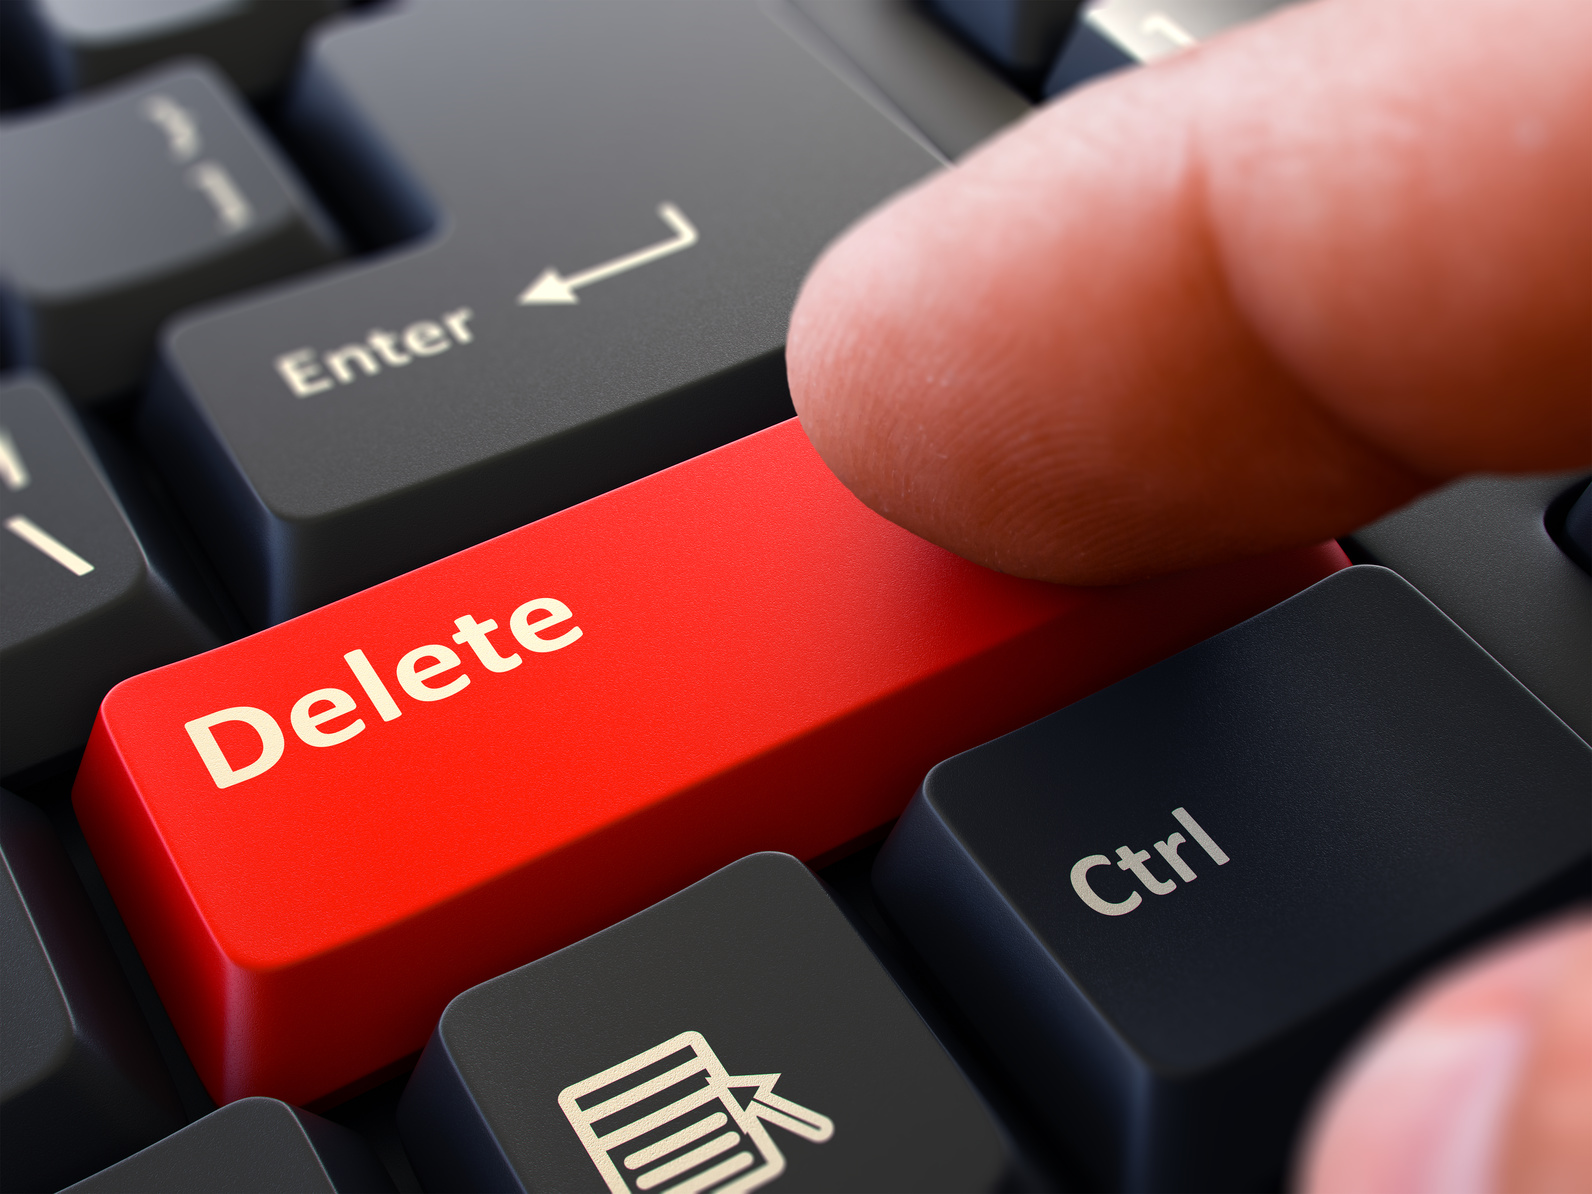 Delete - Written on Red Keyboard Key. Male Hand Presses Button on Black PC Keyboard. Closeup View. Blurred Background.